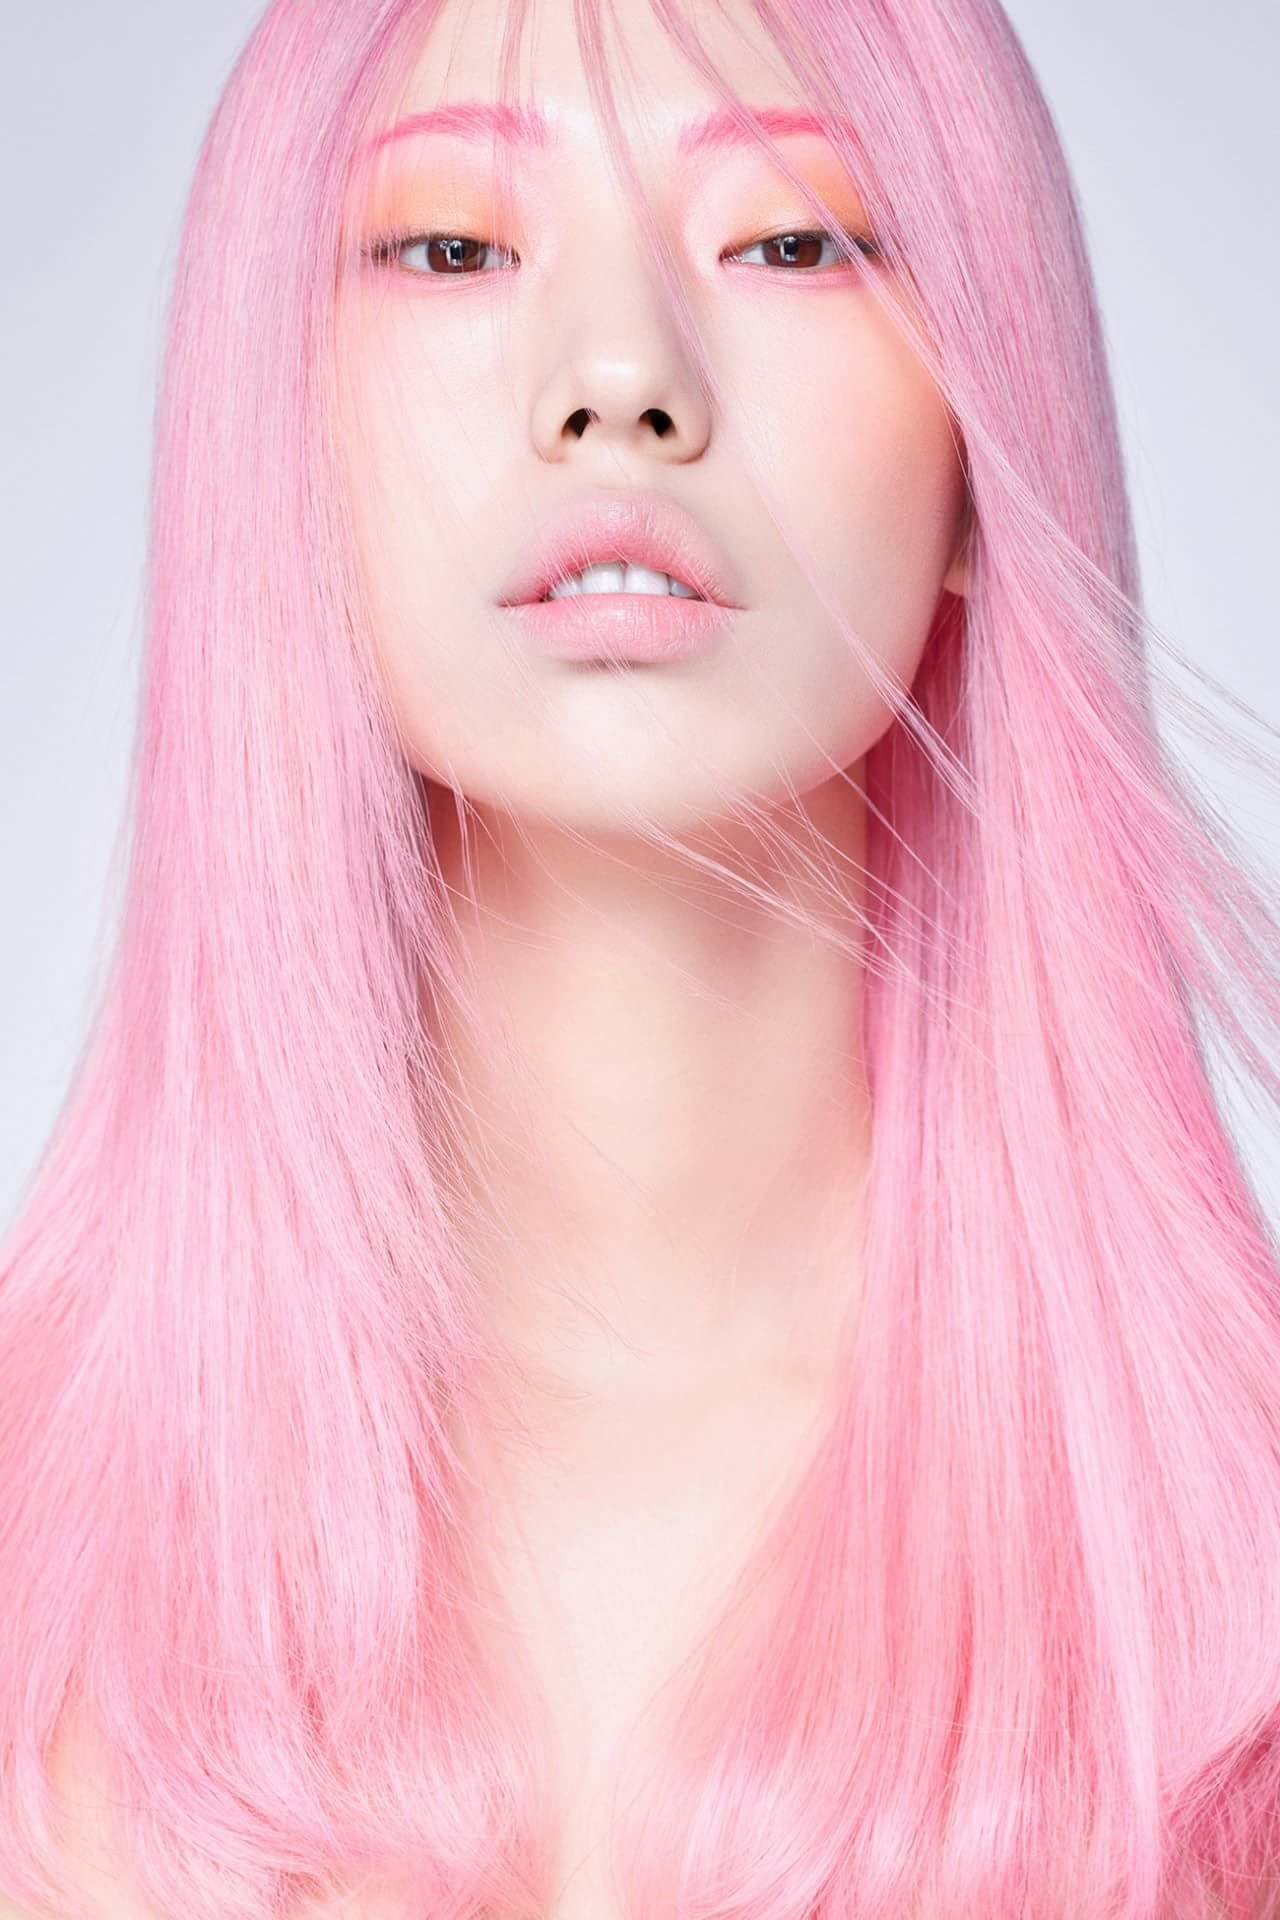 Discussion on this topic: 10 Hair Extension Myths Busted, 10-hair-extension-myths-busted/